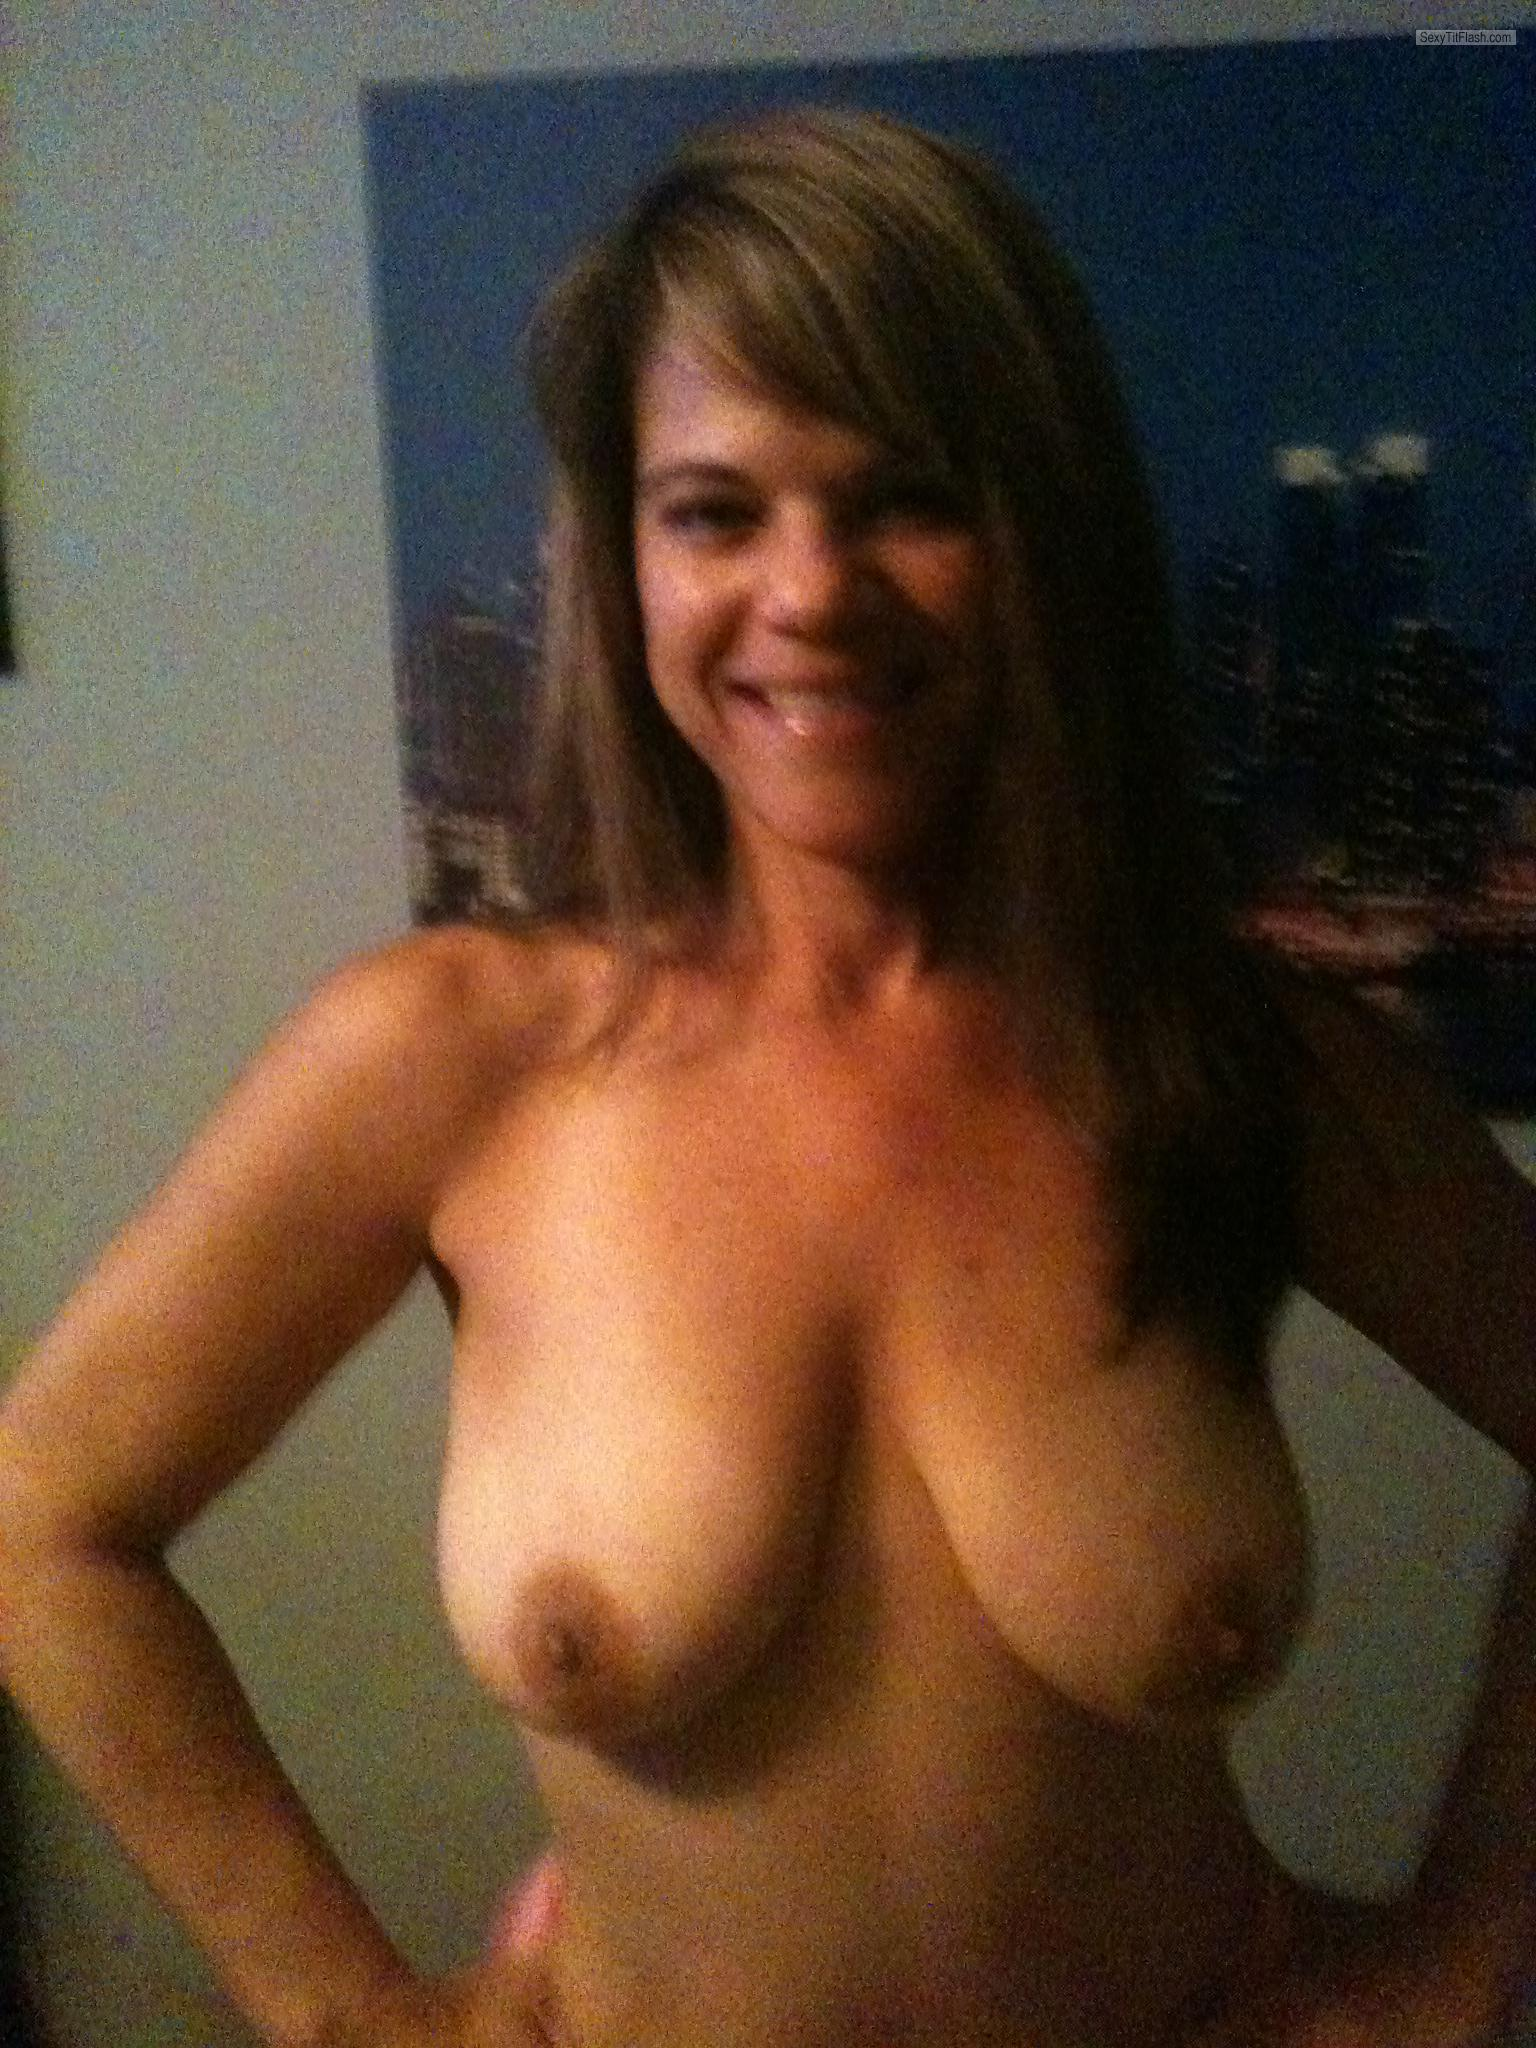 Medium Tits Of My Wife Topless Bry